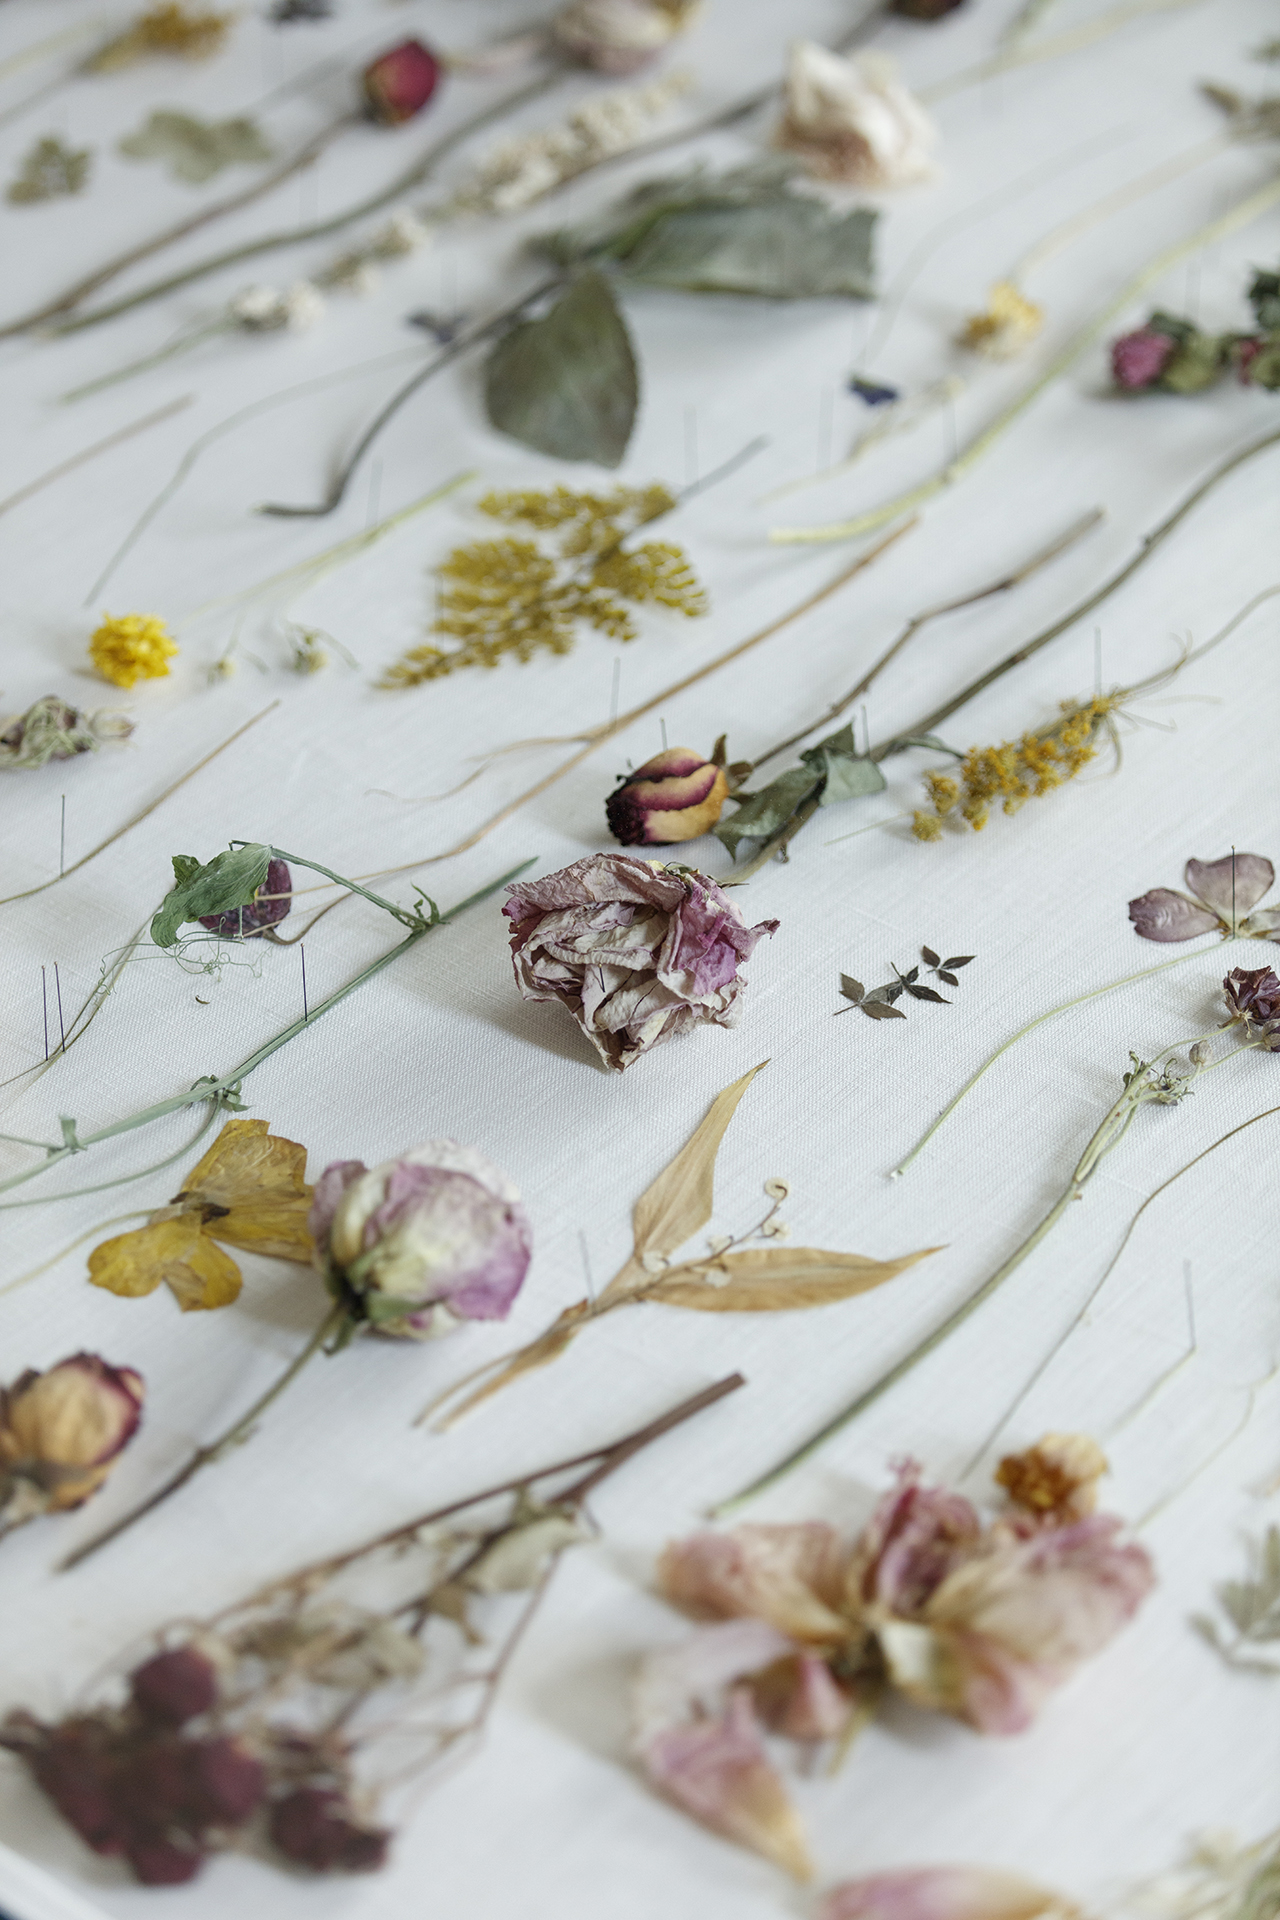 collection of dried flowers on white surface